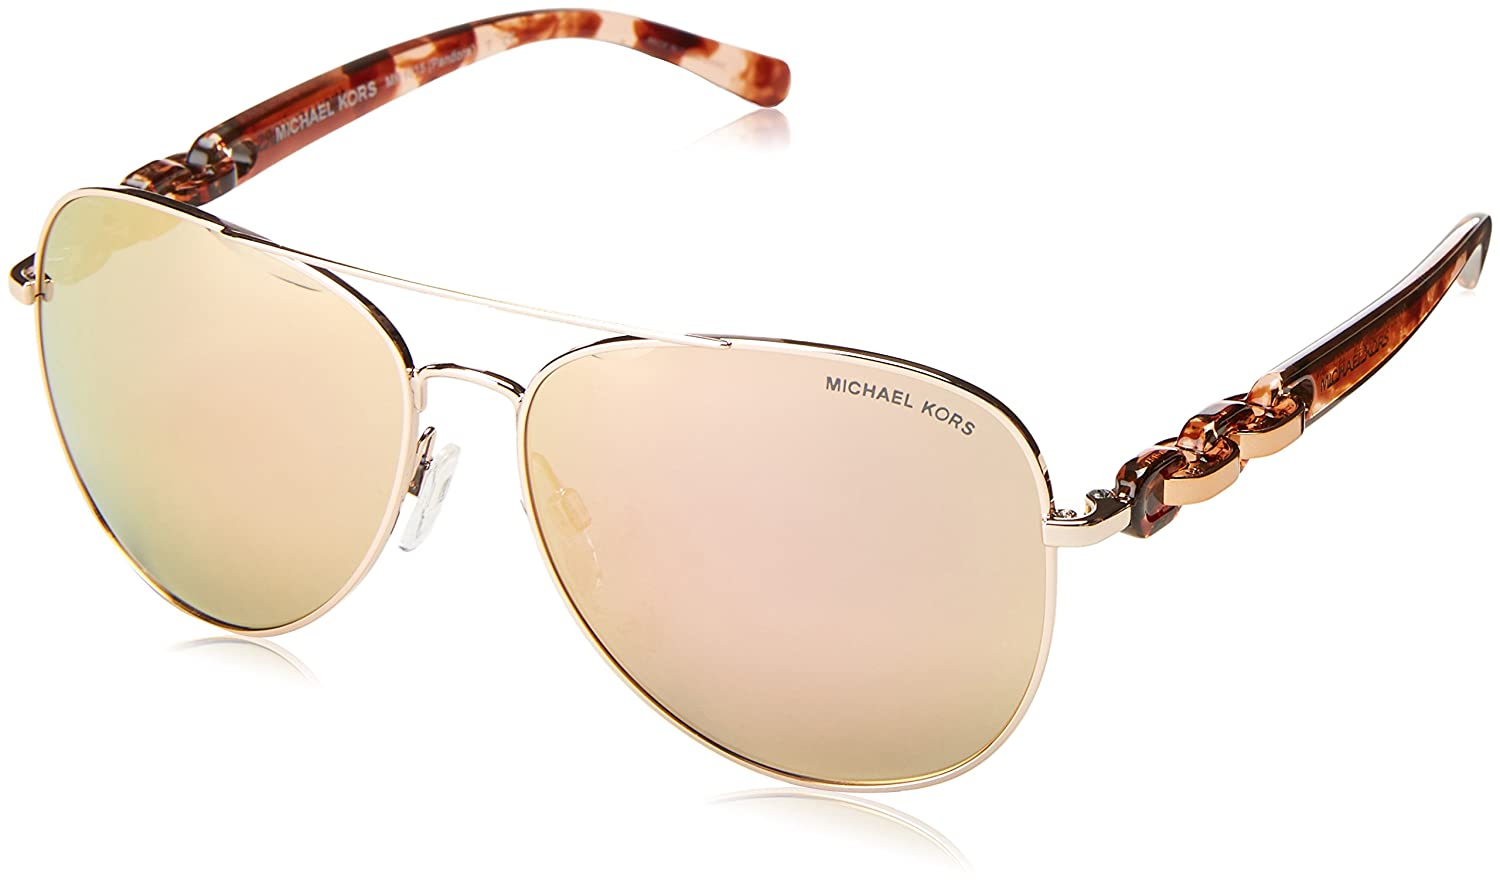 b886802103f Michael Kors MK1015 1130R1 Rose Gold-Tone Pandora Pilot Sunglasses Lens  Categor at Amazon Women s Clothing store